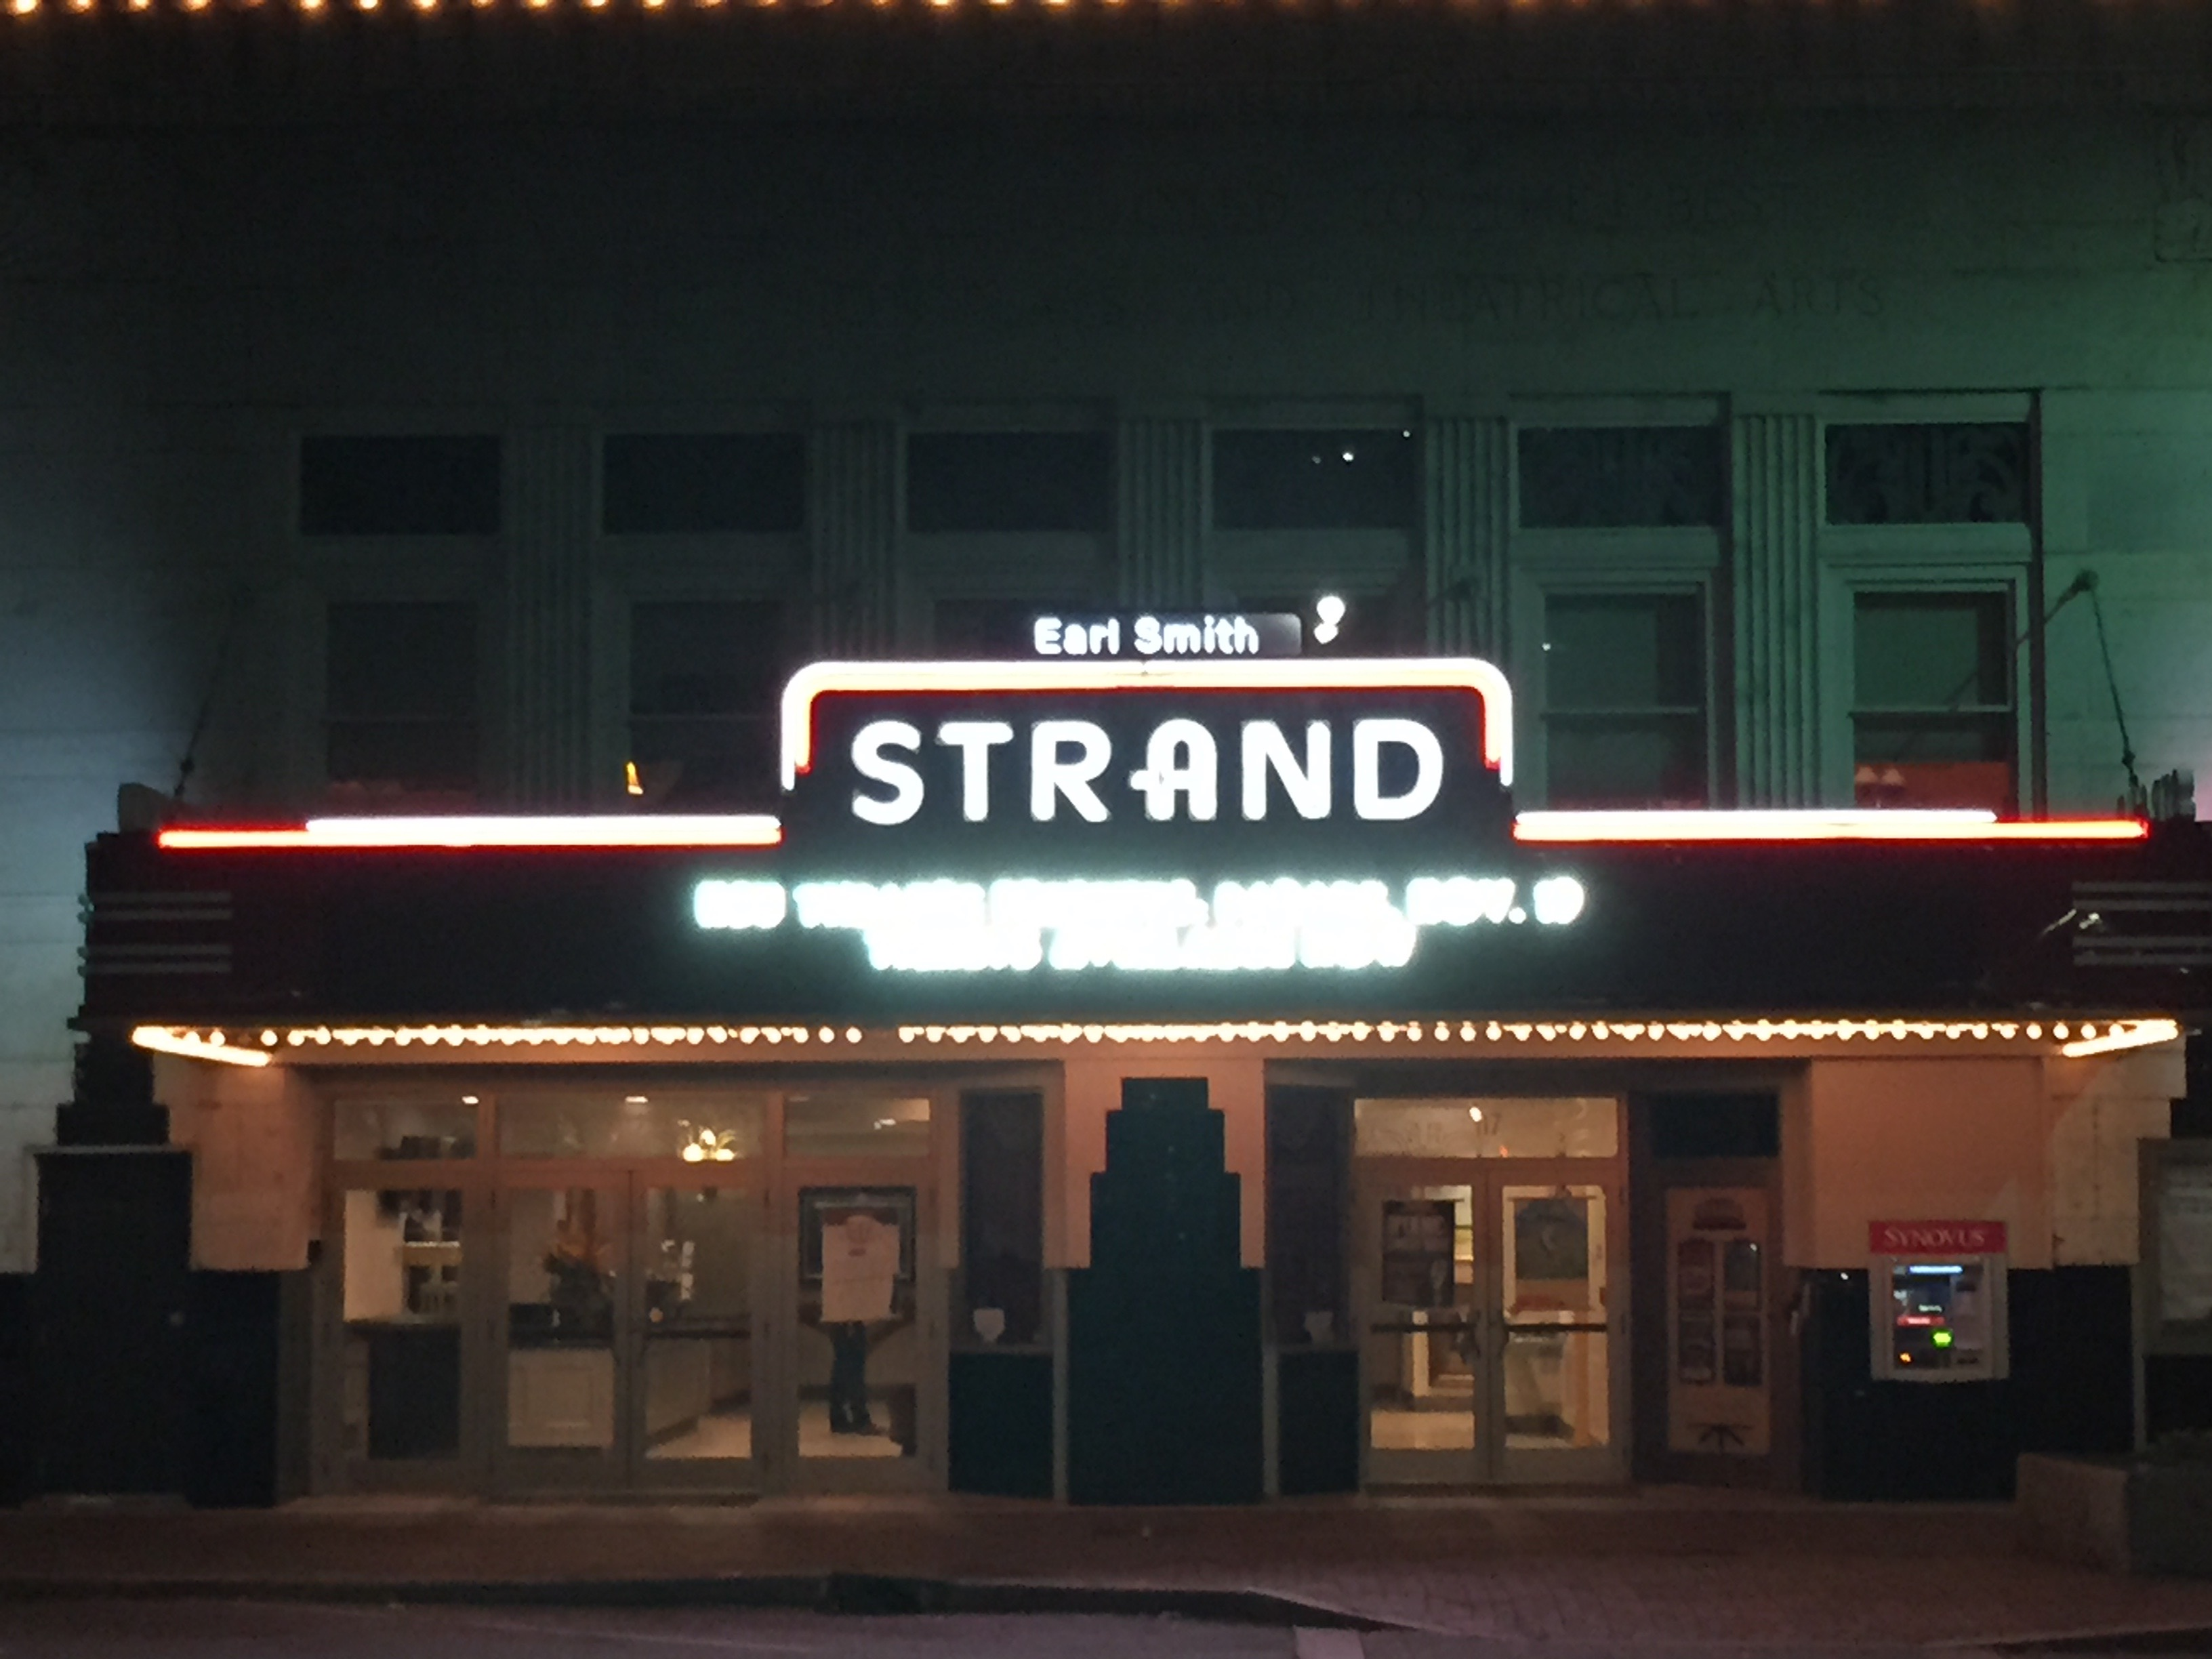 The Strand Theatre - Marietta, Georgia